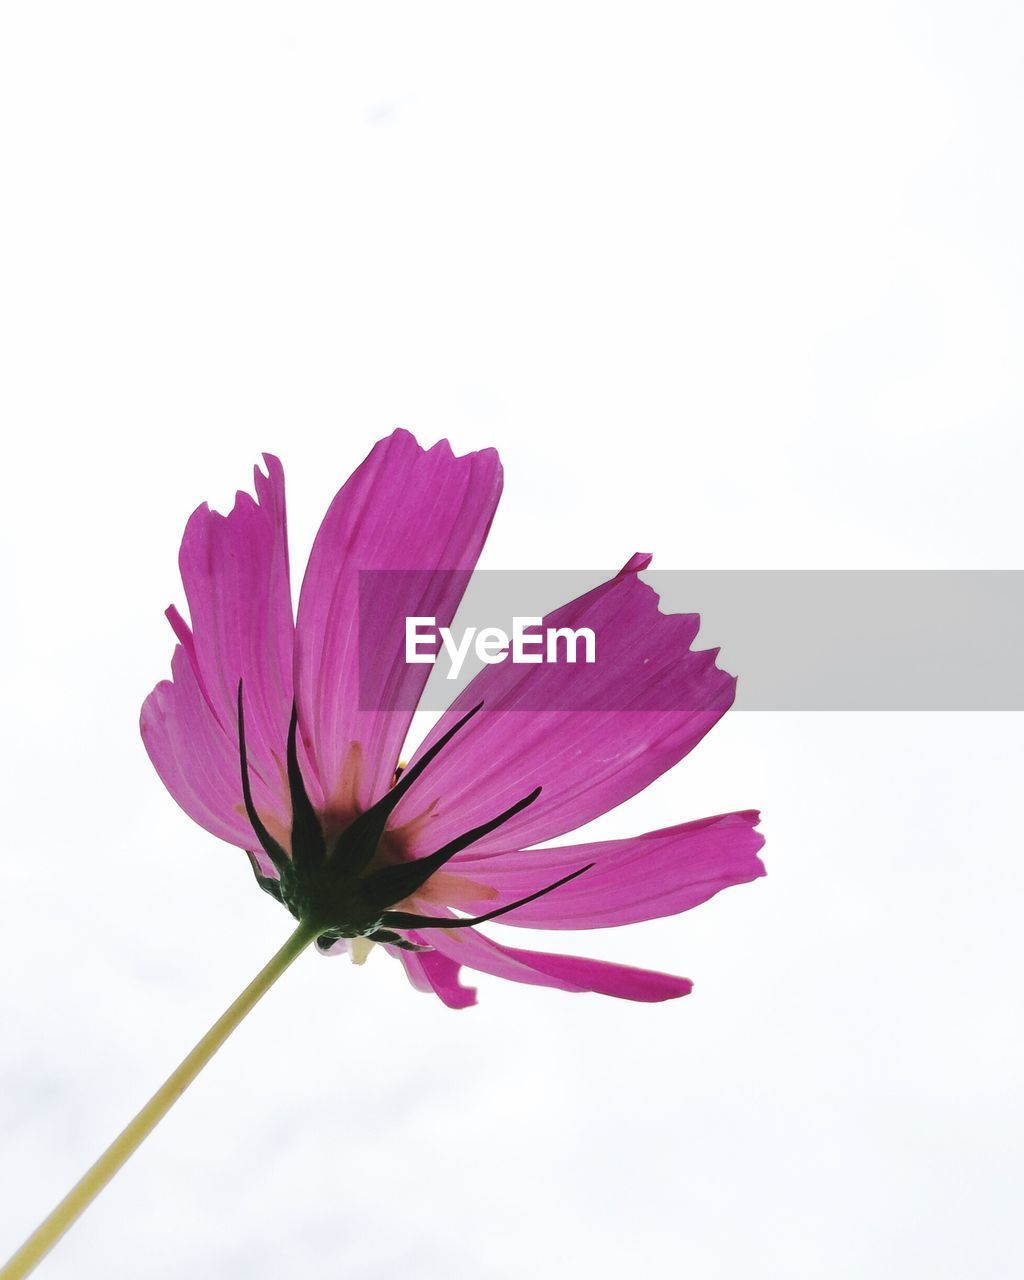 flowering plant, flower, vulnerability, fragility, freshness, beauty in nature, petal, plant, close-up, pink color, flower head, inflorescence, studio shot, growth, white background, copy space, plant stem, no people, nature, sepal, pollen, softness